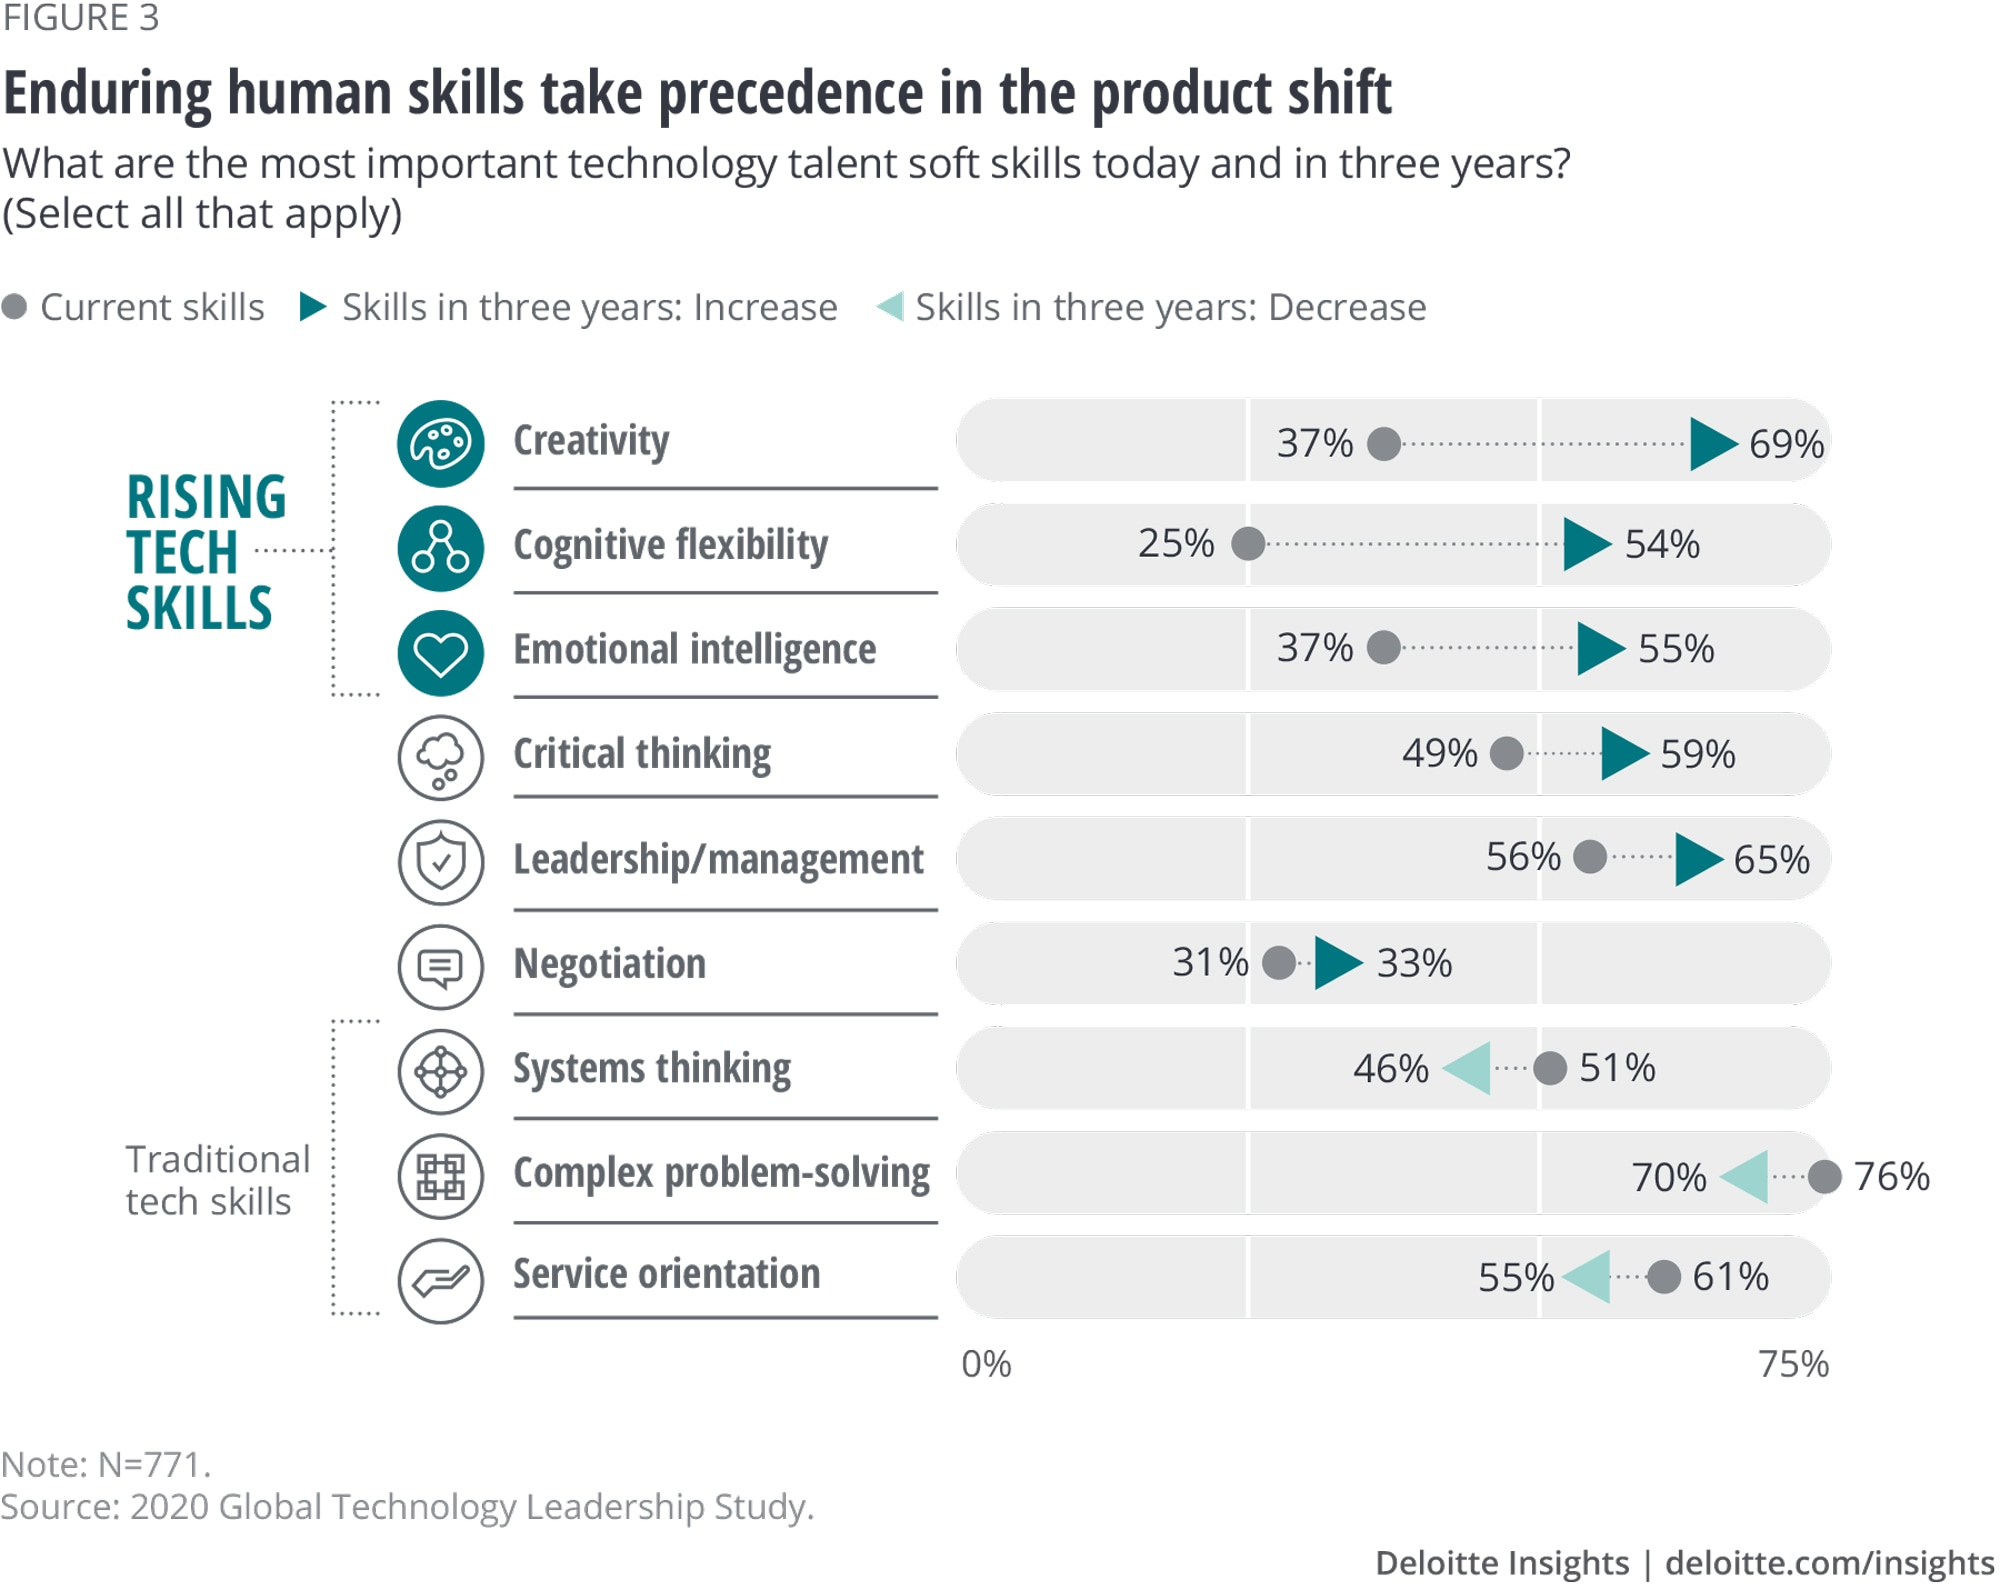 Enduring human skills take precedence in the product shift